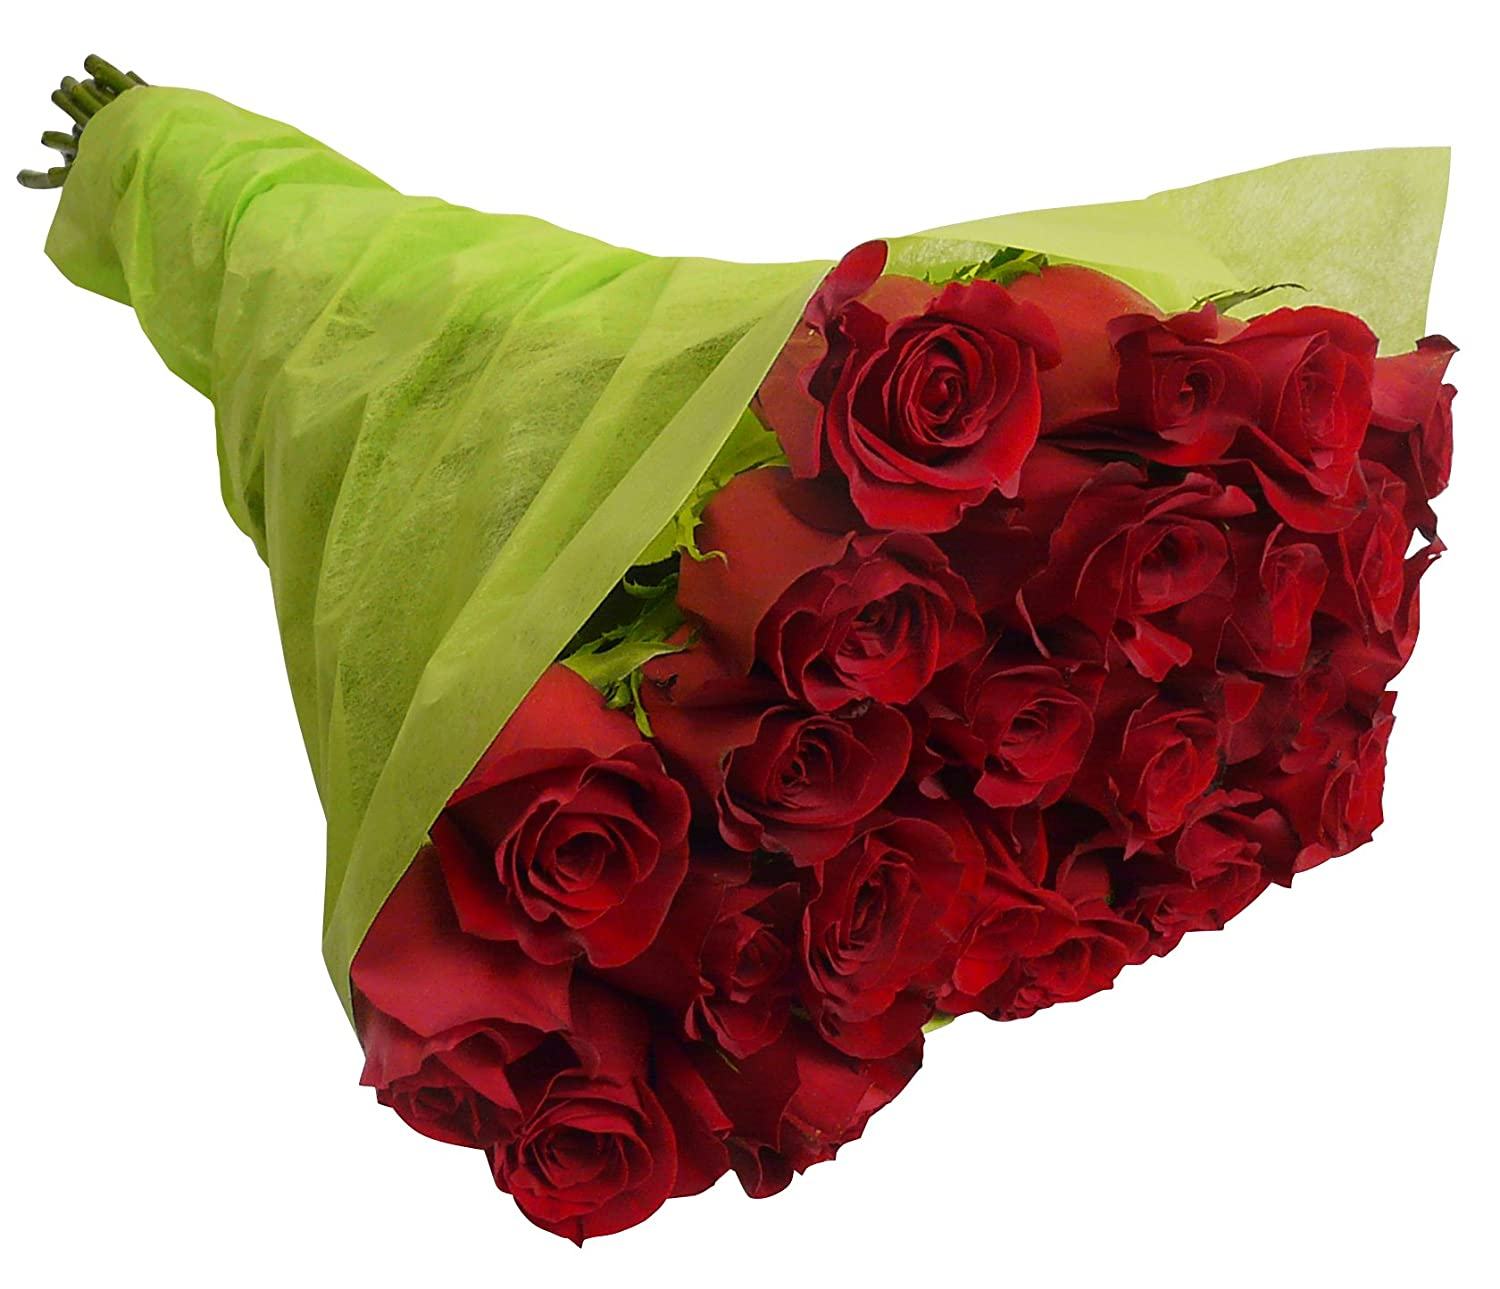 Amazon.com : Benchmark Bouquets 2 Dozen Red Roses, With Vase : Fresh ...